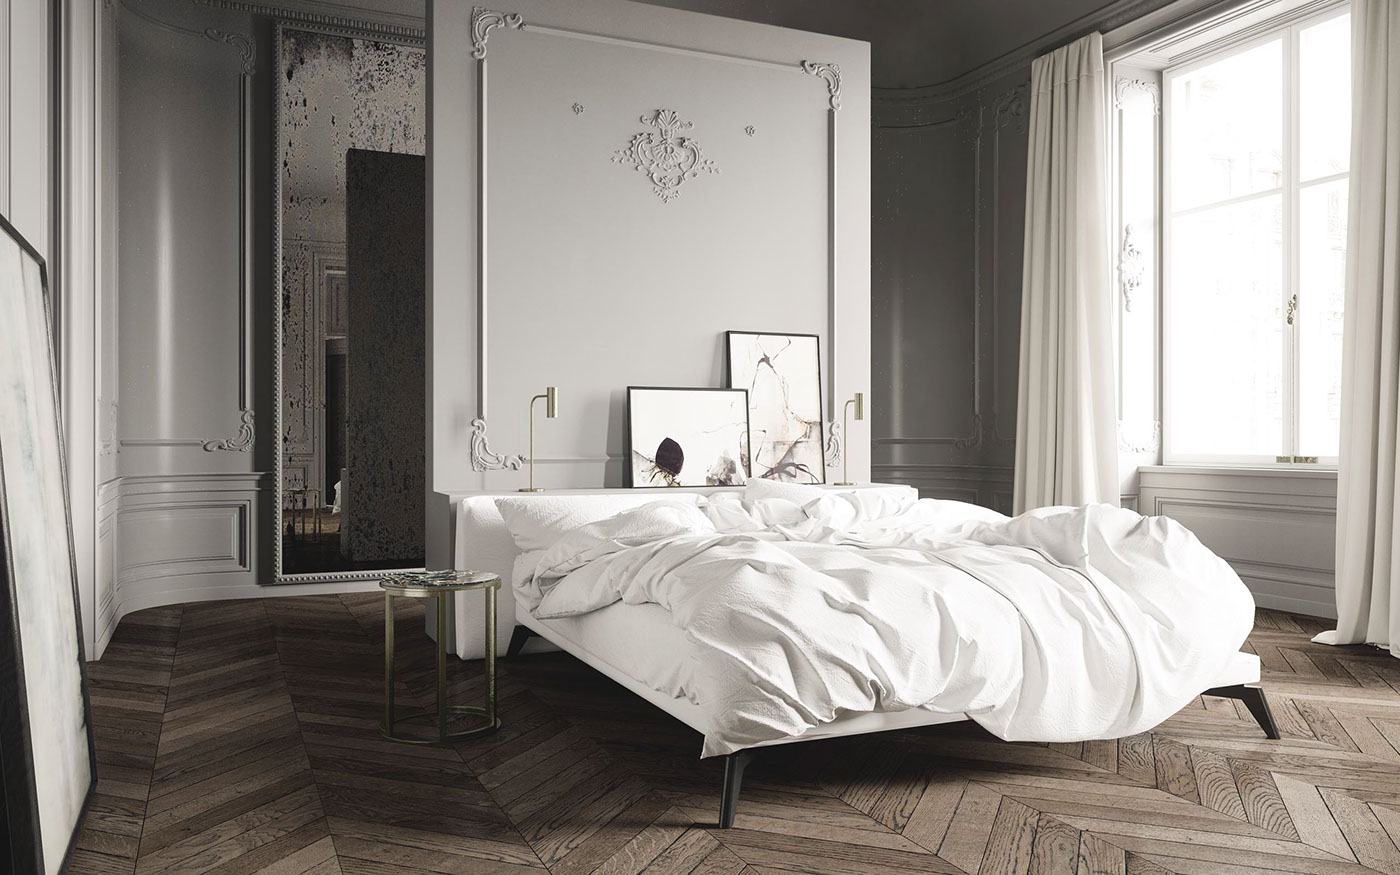 Parisian apartment by Jessica Vedel on Behance